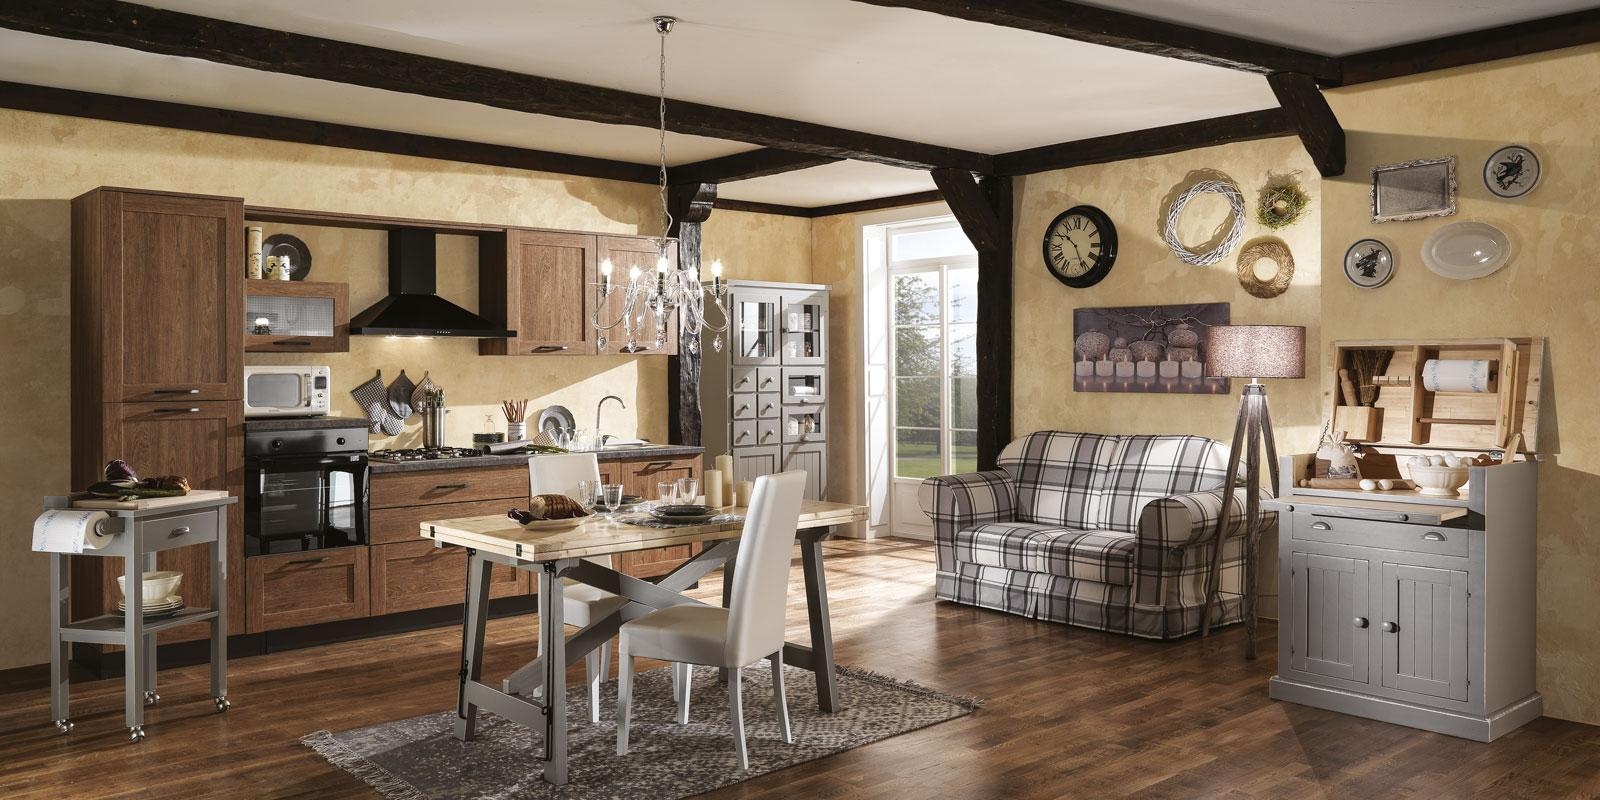 Casa in stile country protagonisti legno e materiali - Camera stile country ...